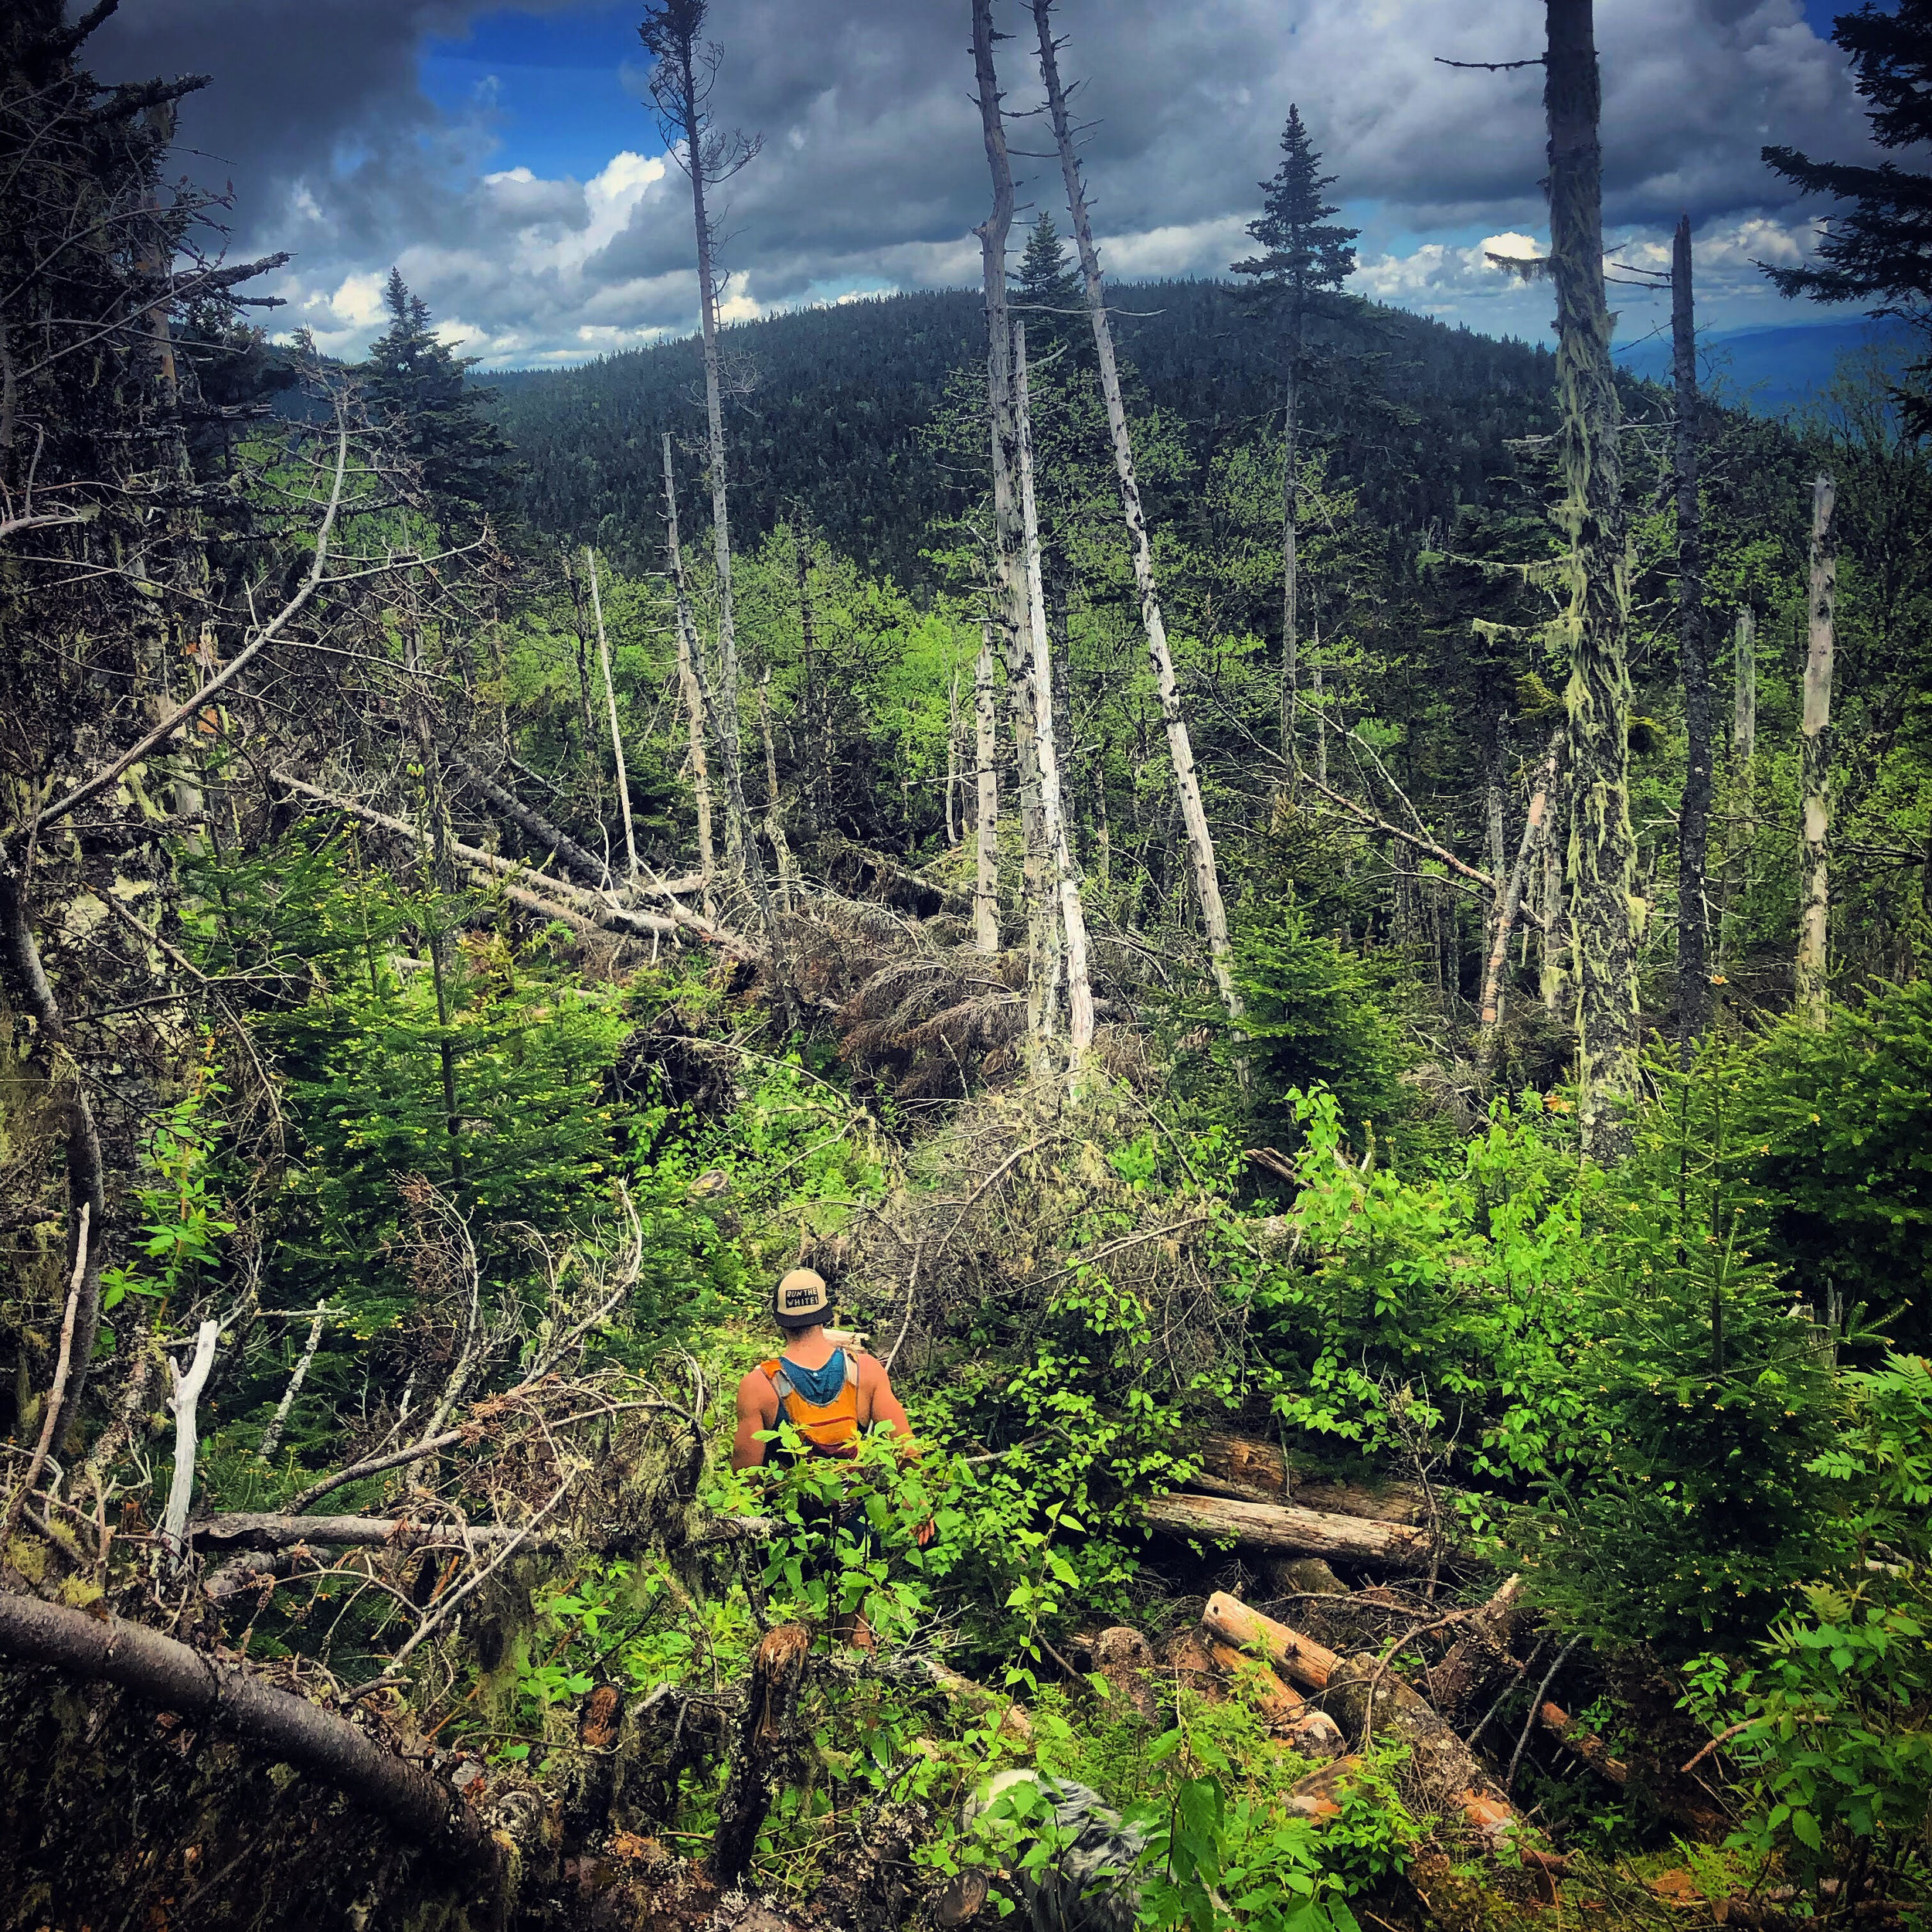 The wild and rugged Kilkenny Ridge Trail across the Weeks